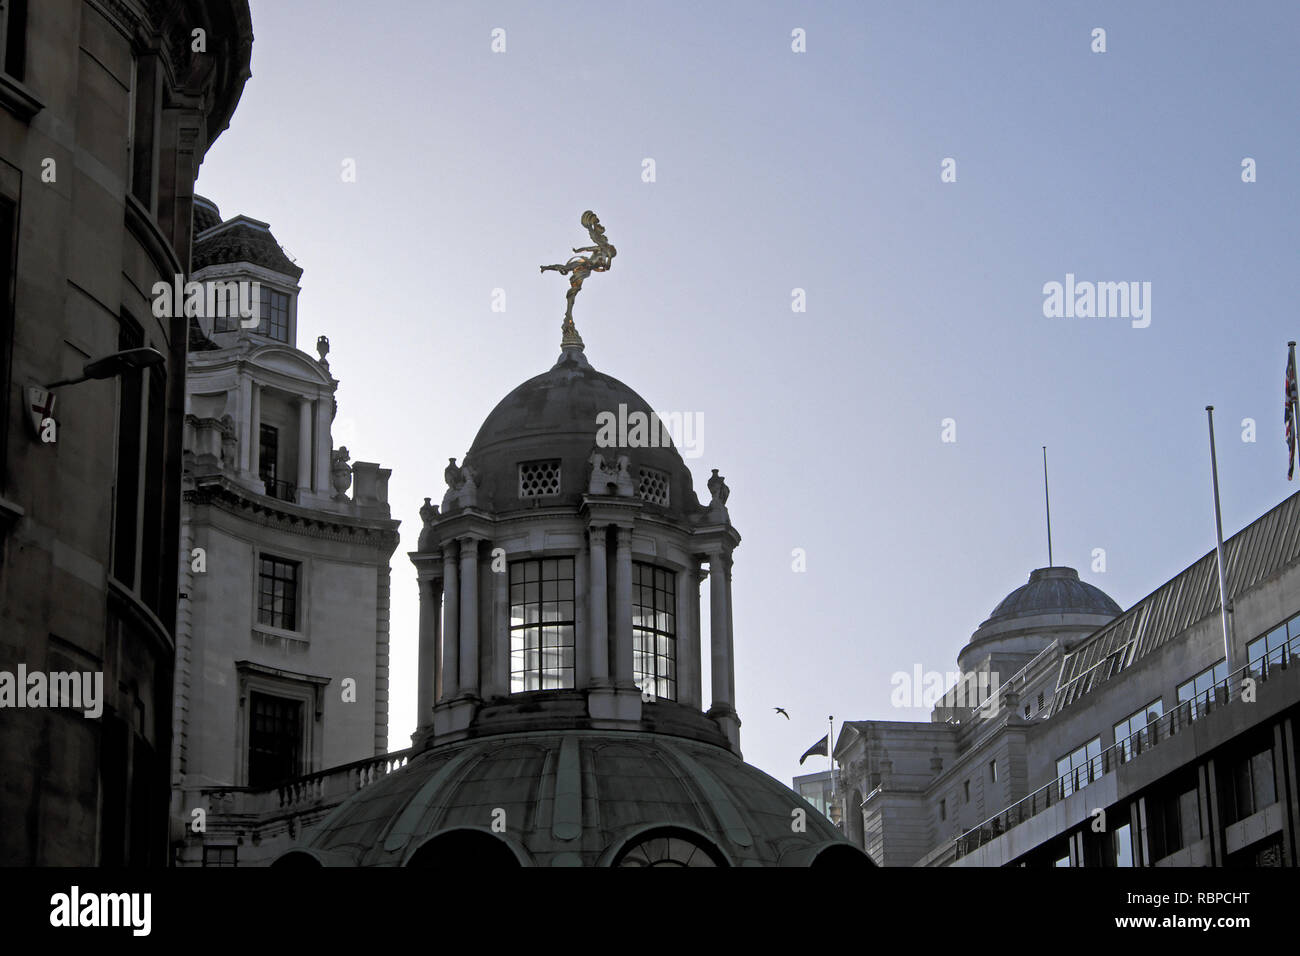 Statue of Ariel figure silhouette on the roof of the Bank of England exterior view from Lothbury & Princes Street London EC2 England UK  KATHY DEWITT - Stock Image